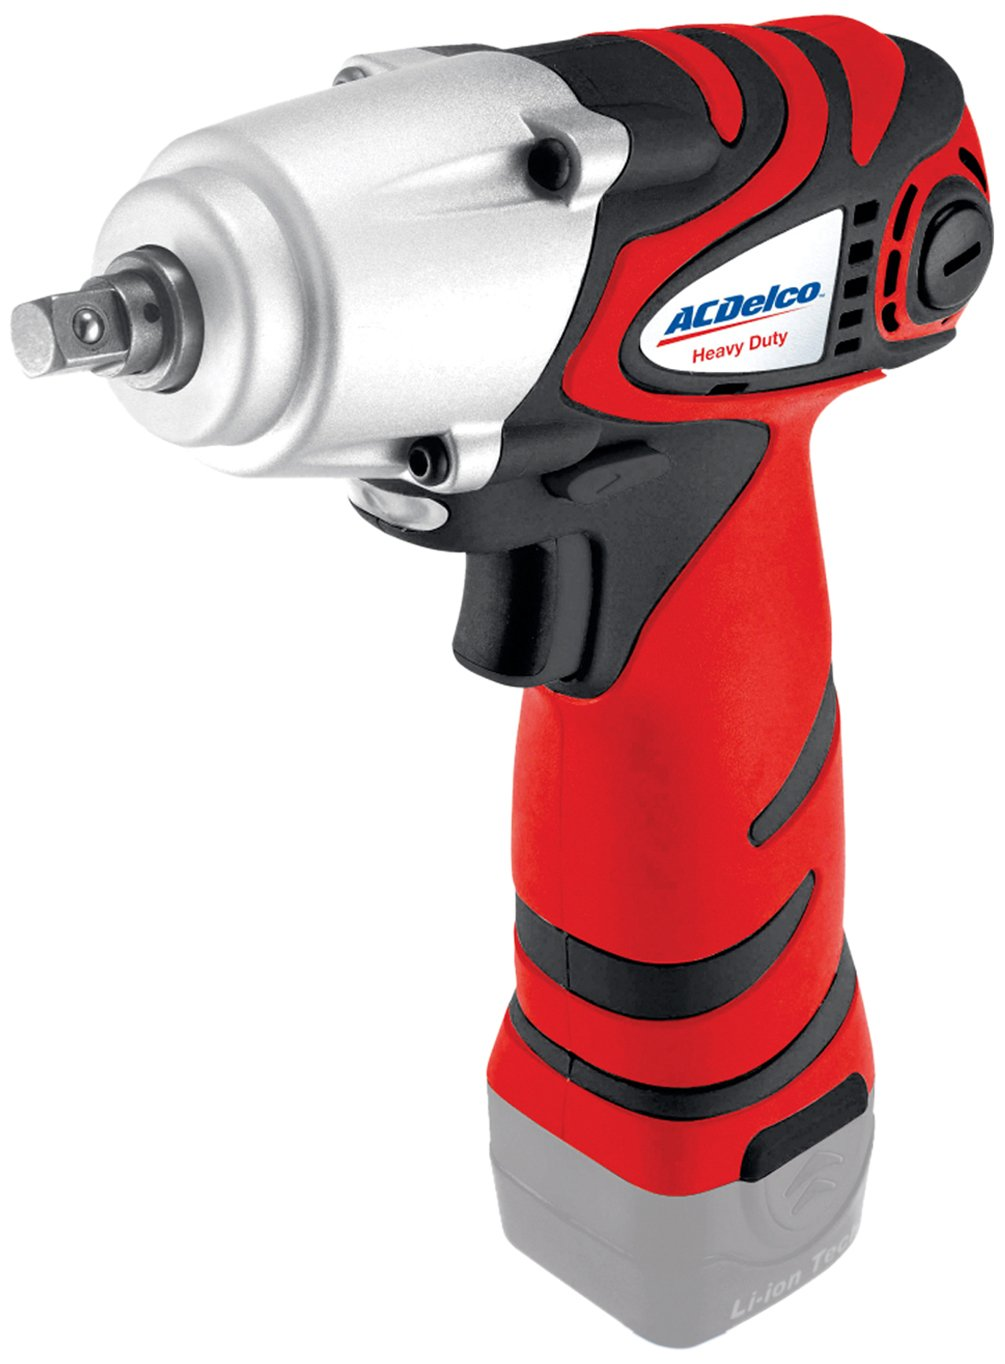 ACDelco Tools ARI1258-3T 3/8'' Impact Wrench